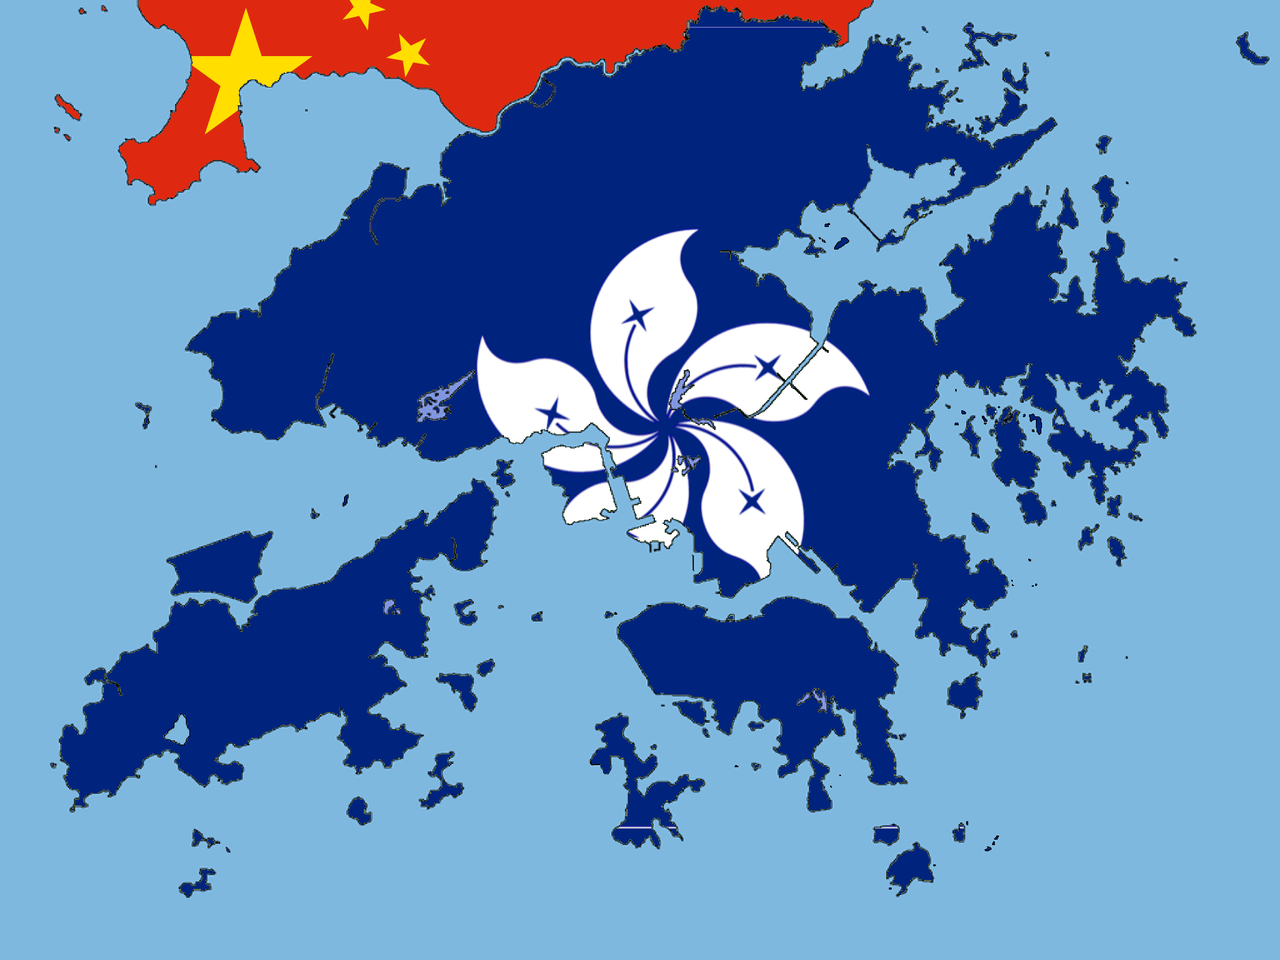 Hong Kong Flag Map Without China S Stars The Flag Hong Kong Flag Hong Kong Map Hong Kong